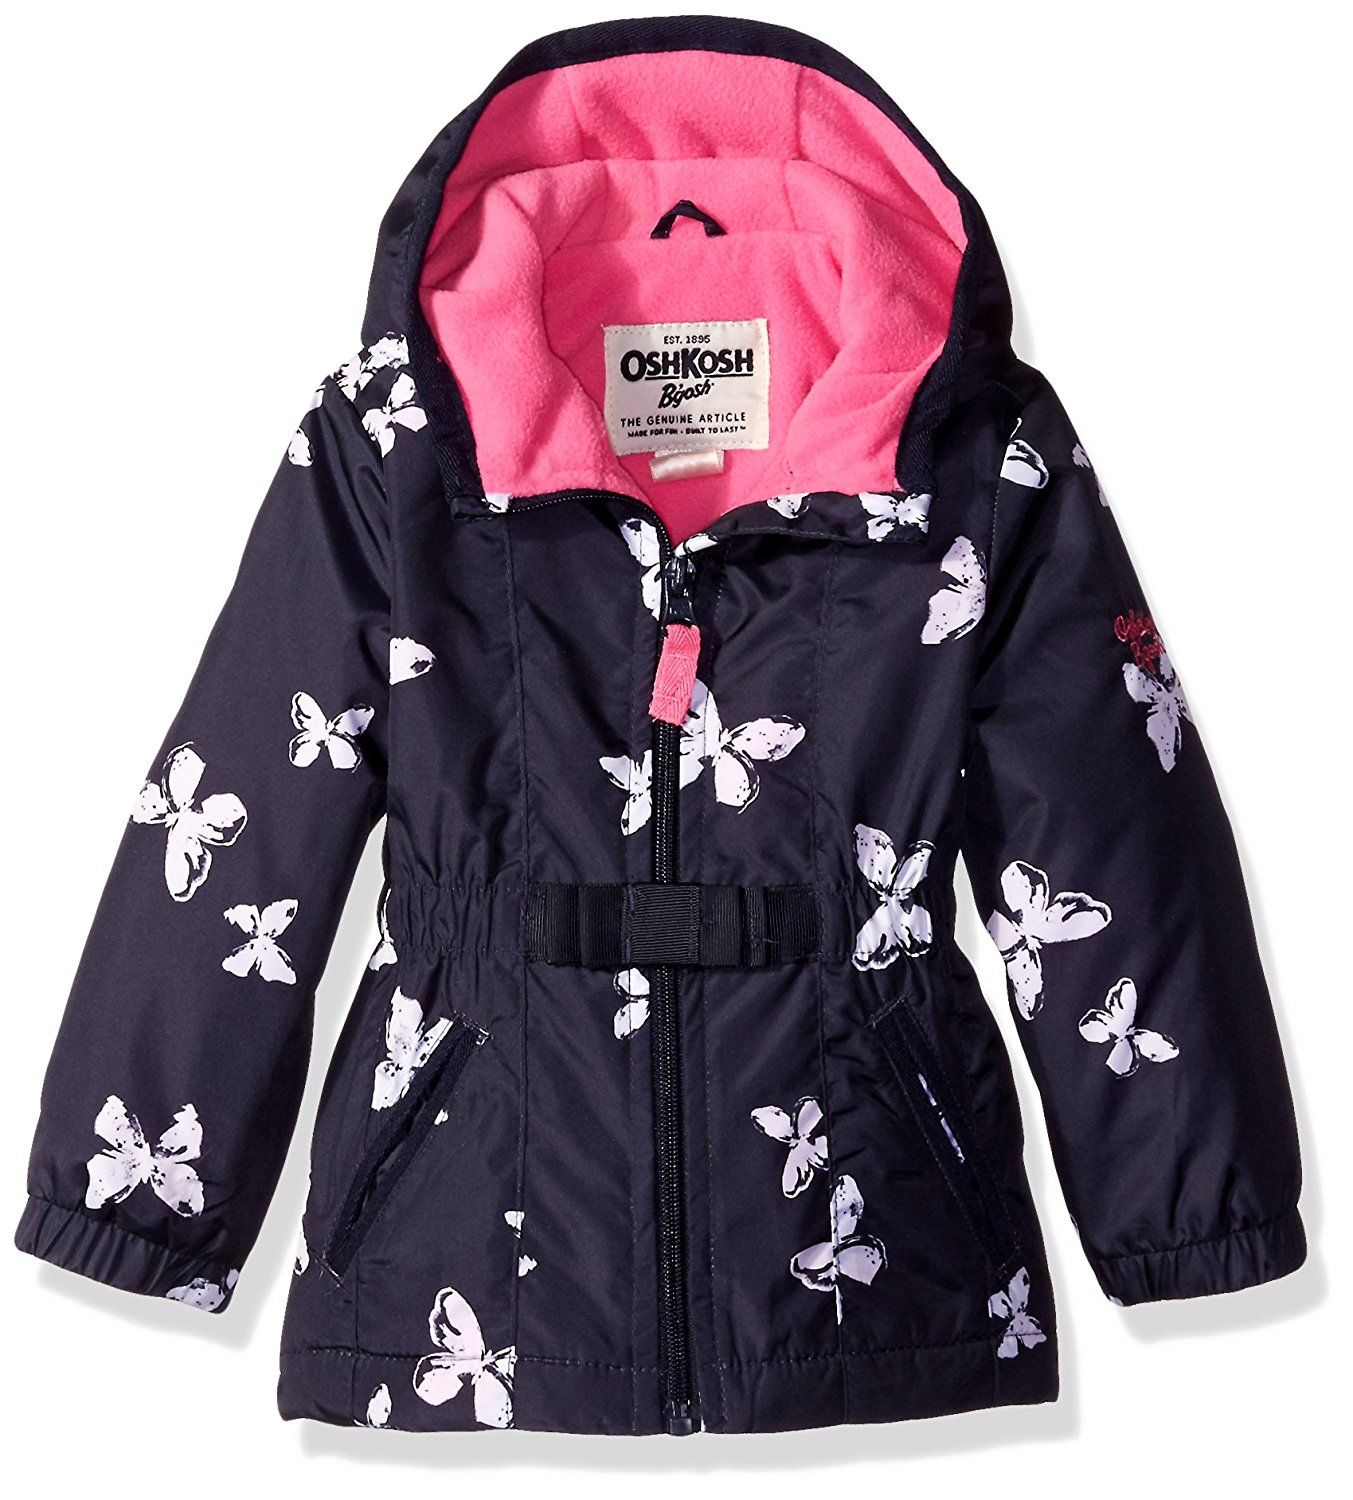 d1f4a788d518 Osh Kosh Baby Girls  Infant Printed Midweight Transitional Jacket ...